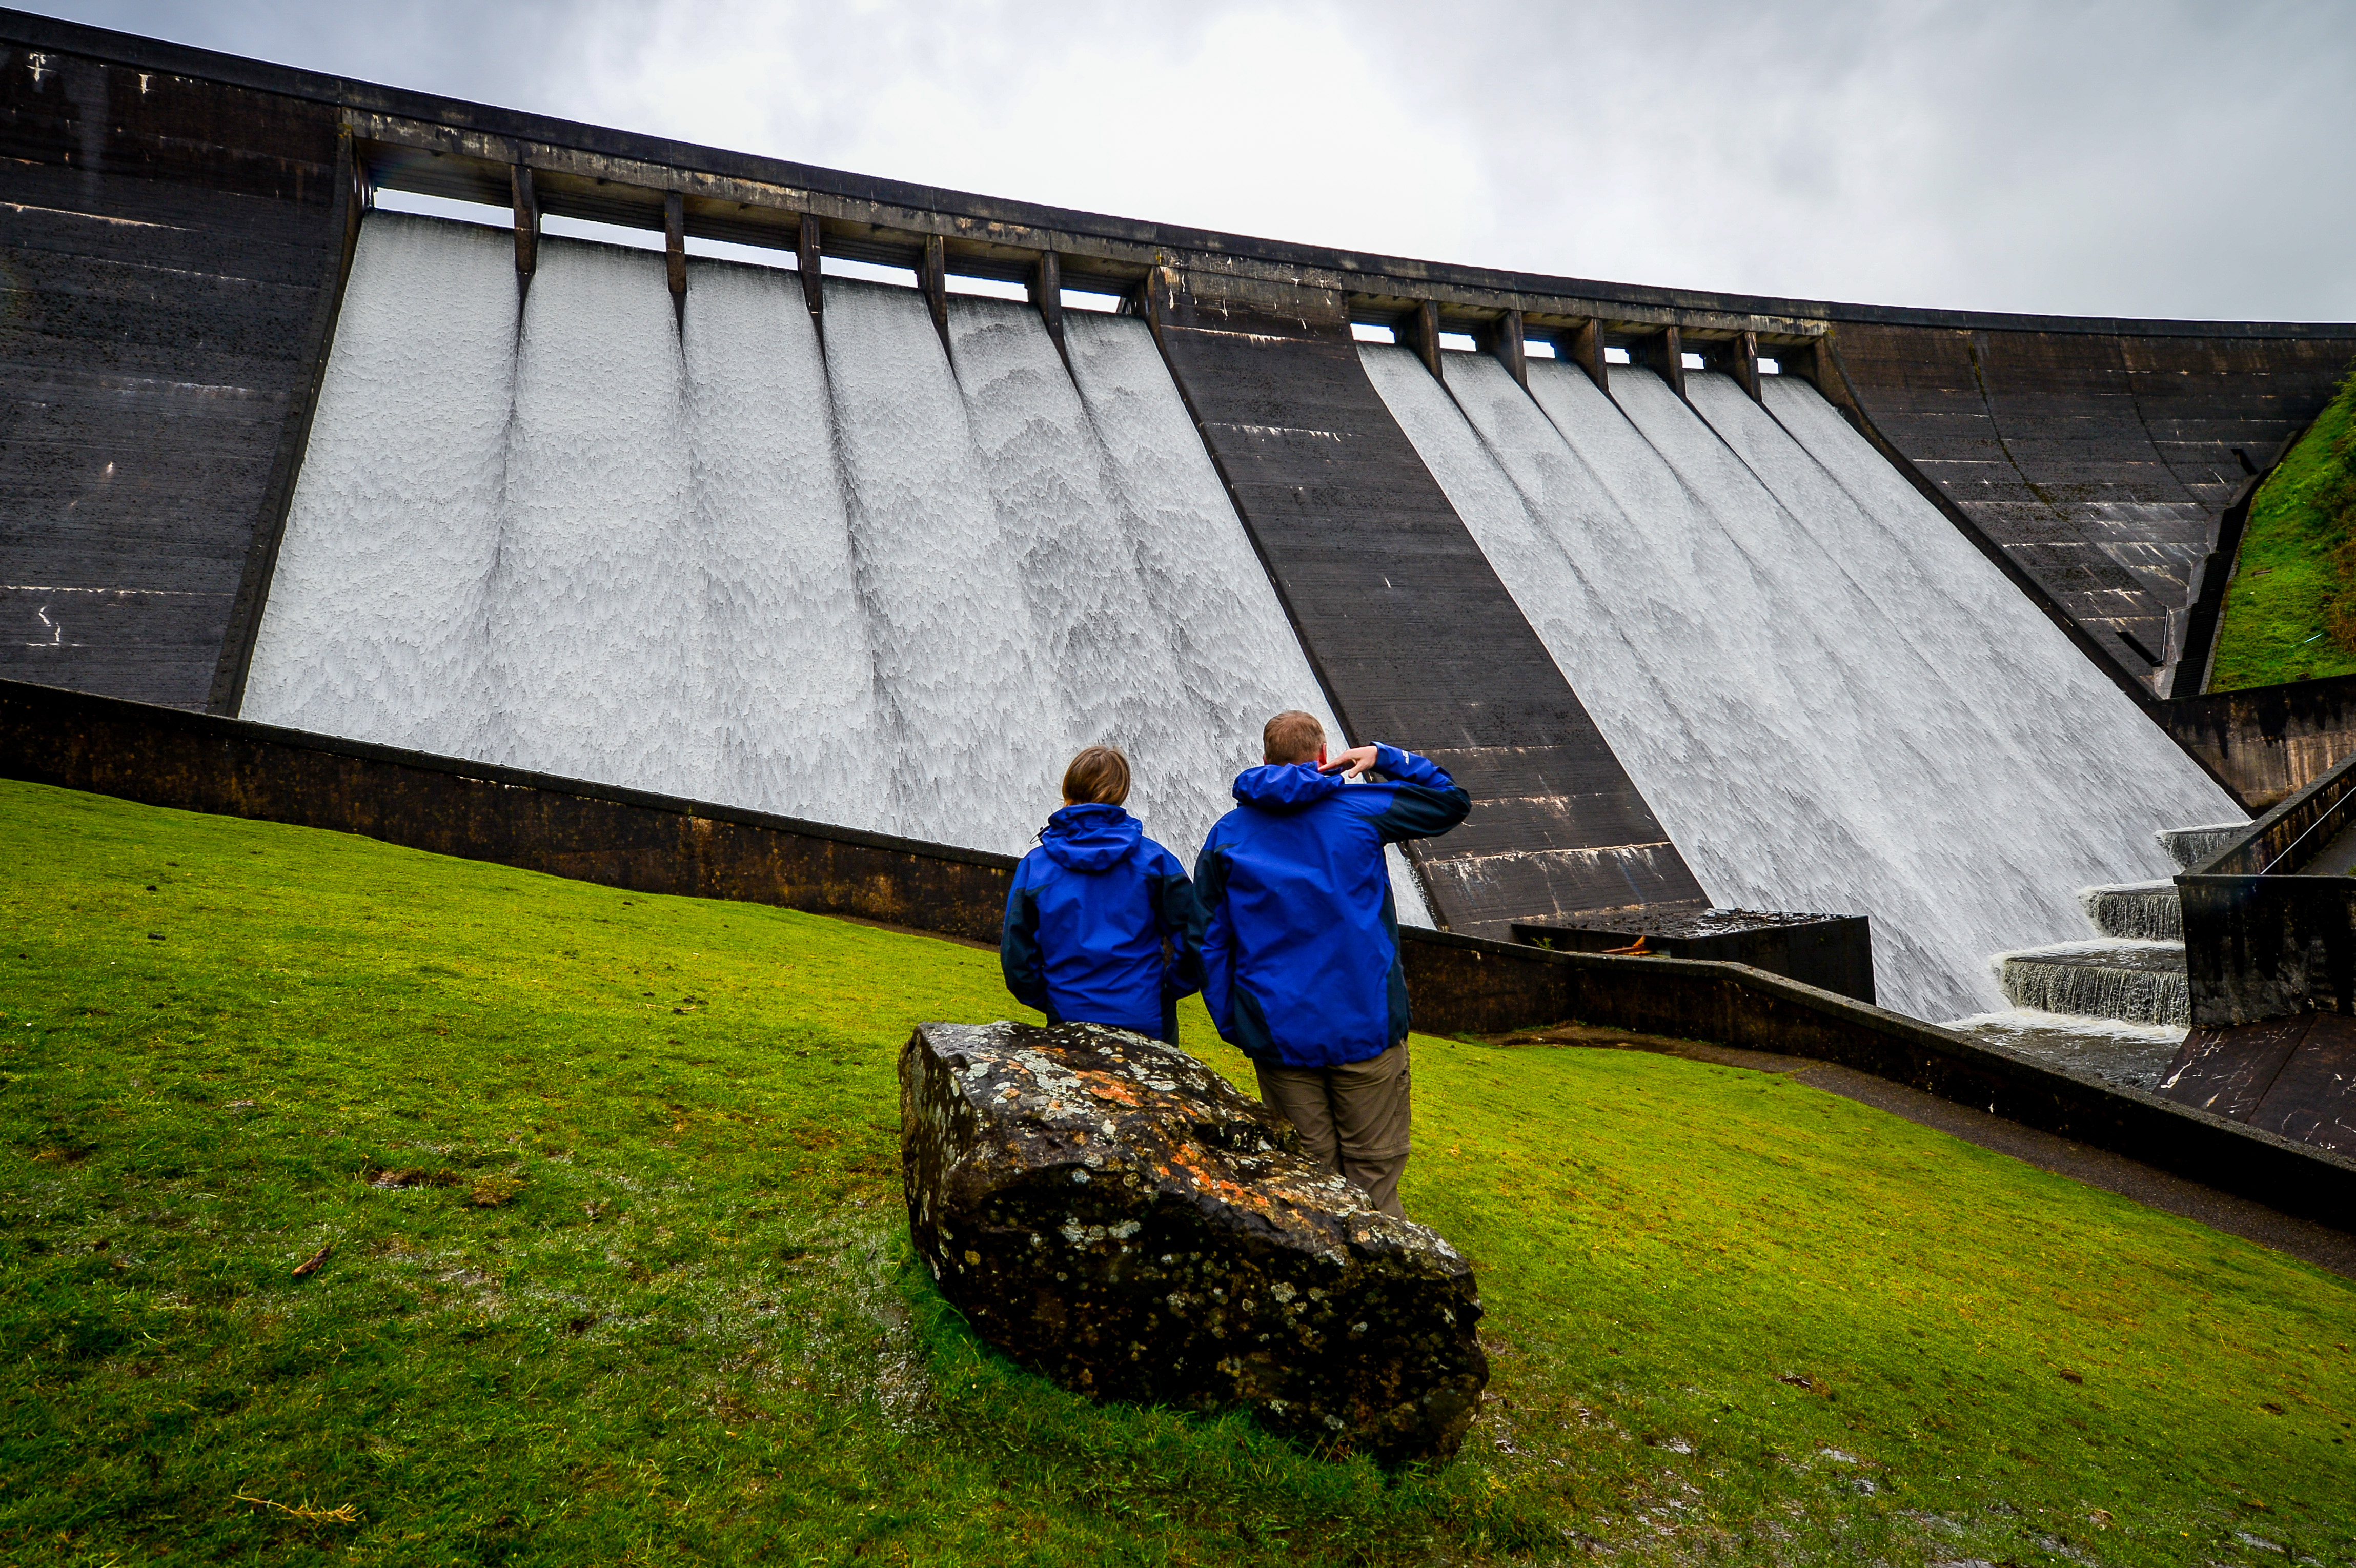 <p>People look at the overflowing spillway at Meldon Dam in Dartmoor, Devon, after heavy rain in the South West, which could see new rainfall records set for May in Devon and Wales. Picture date: Monday May 24, 2021.</p>